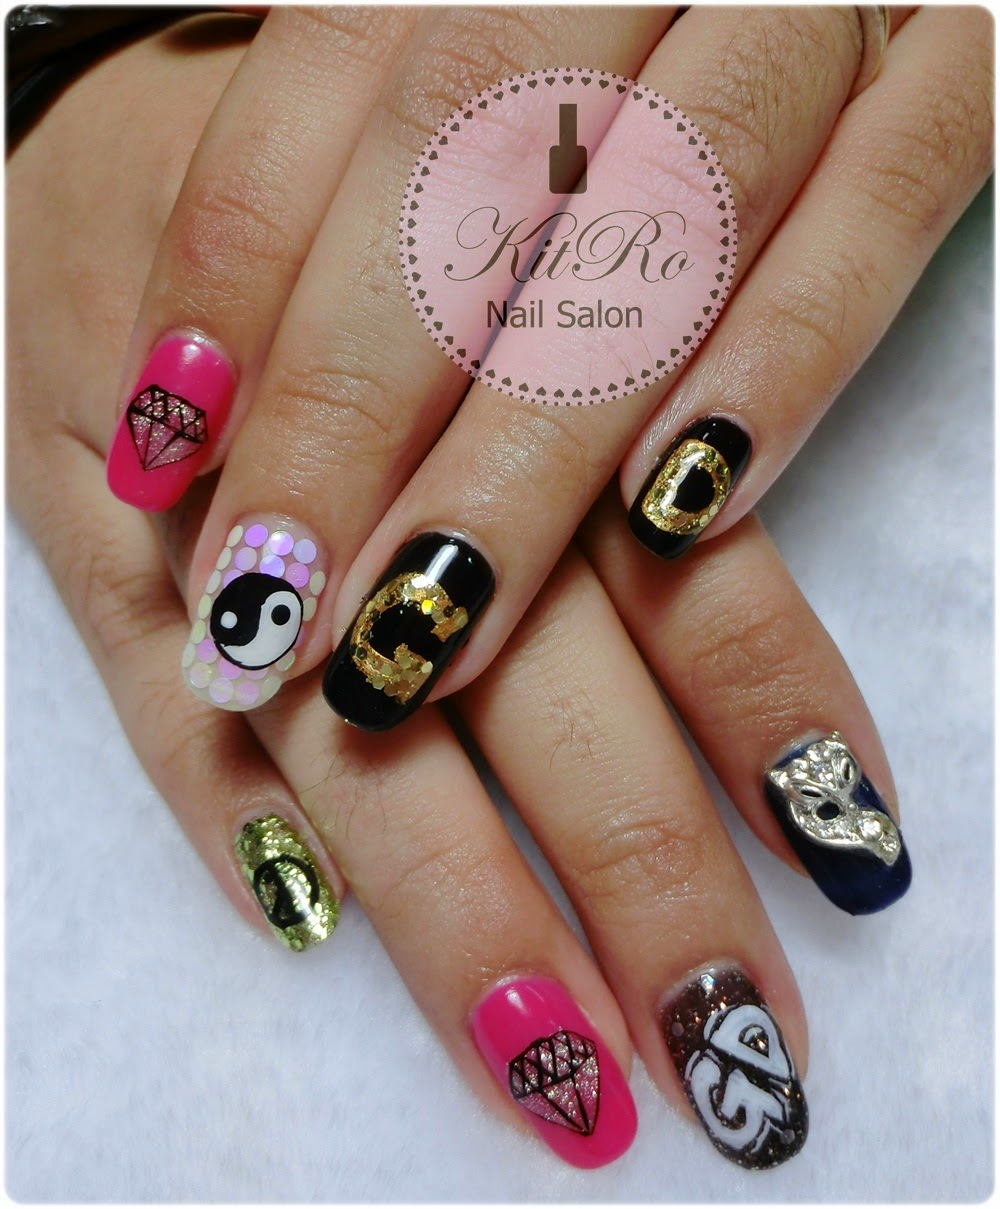 Nail Art Ideas » G By G Nail Art - Pictures of Nail Art Design Ideas